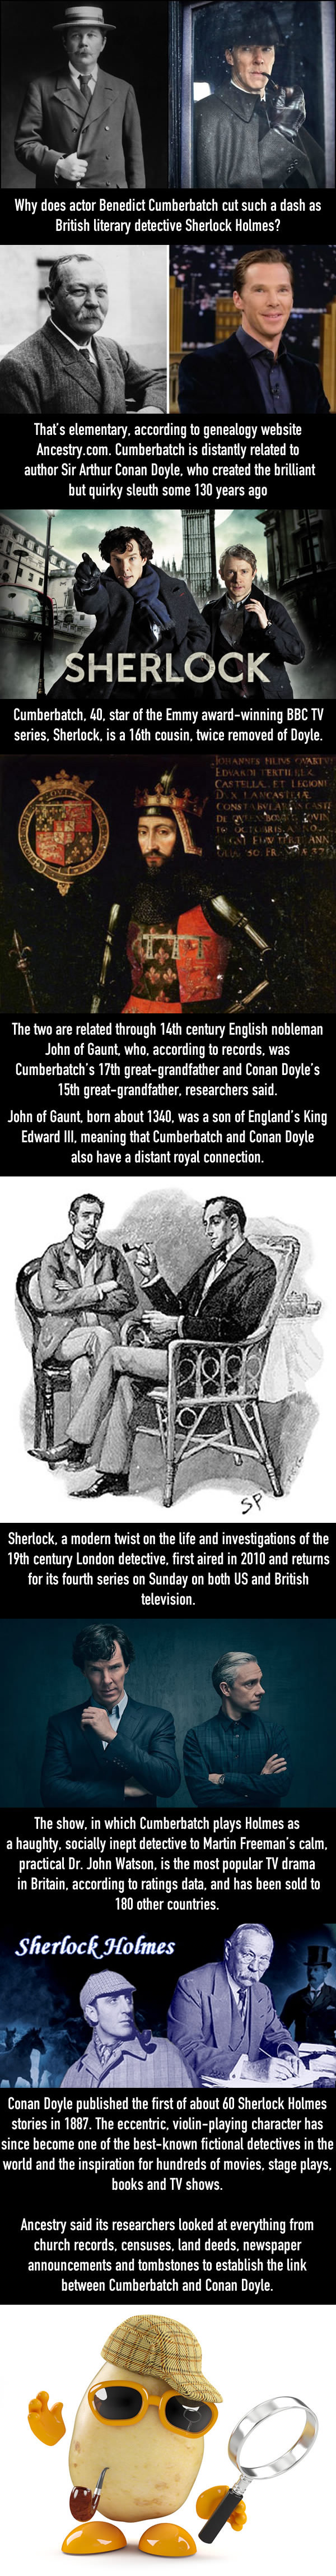 Get this! 'Sherlock' star Benedict Cumberbatch is related to Sir Arthur Conan Doyle